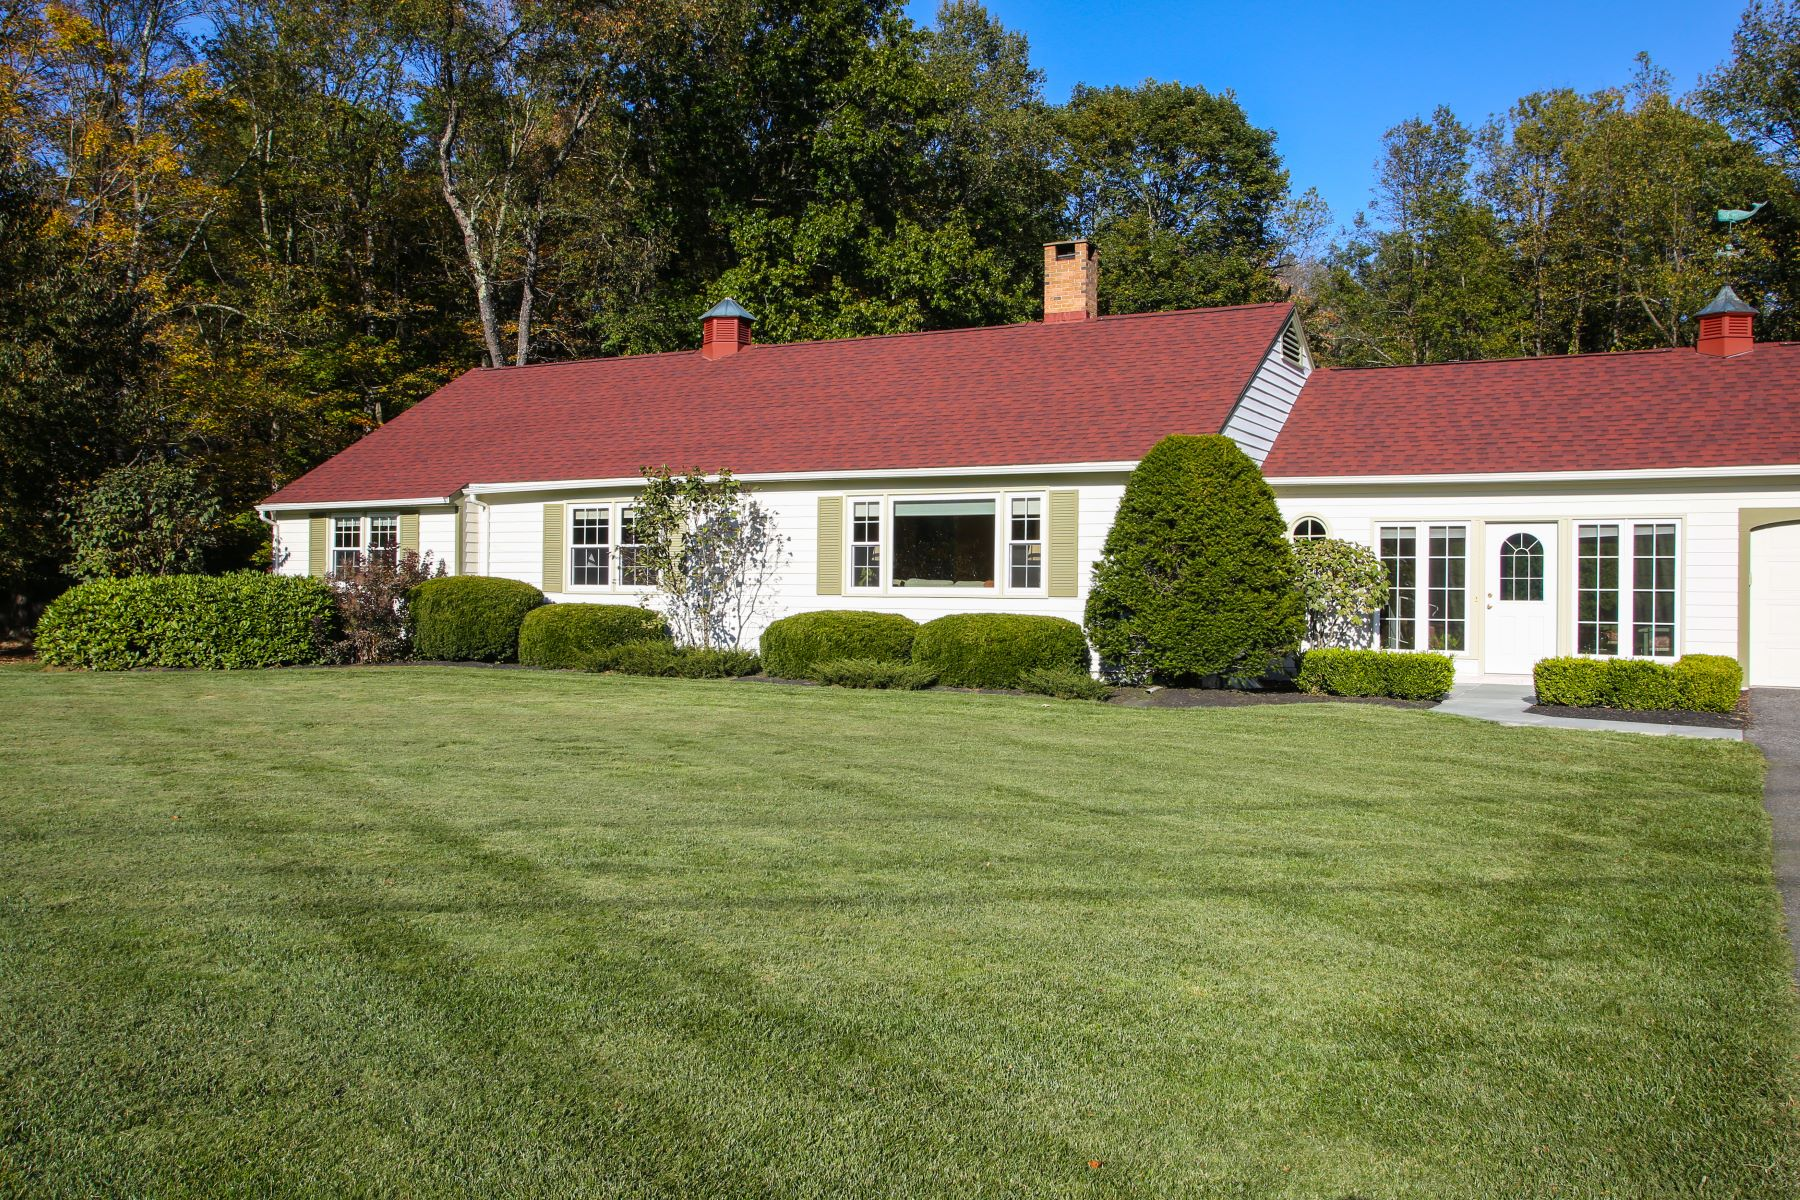 Single Family Home for Active at Get Ready to Enjoy the Summer 130 Park Ln Sheffield, Massachusetts 01257 United States